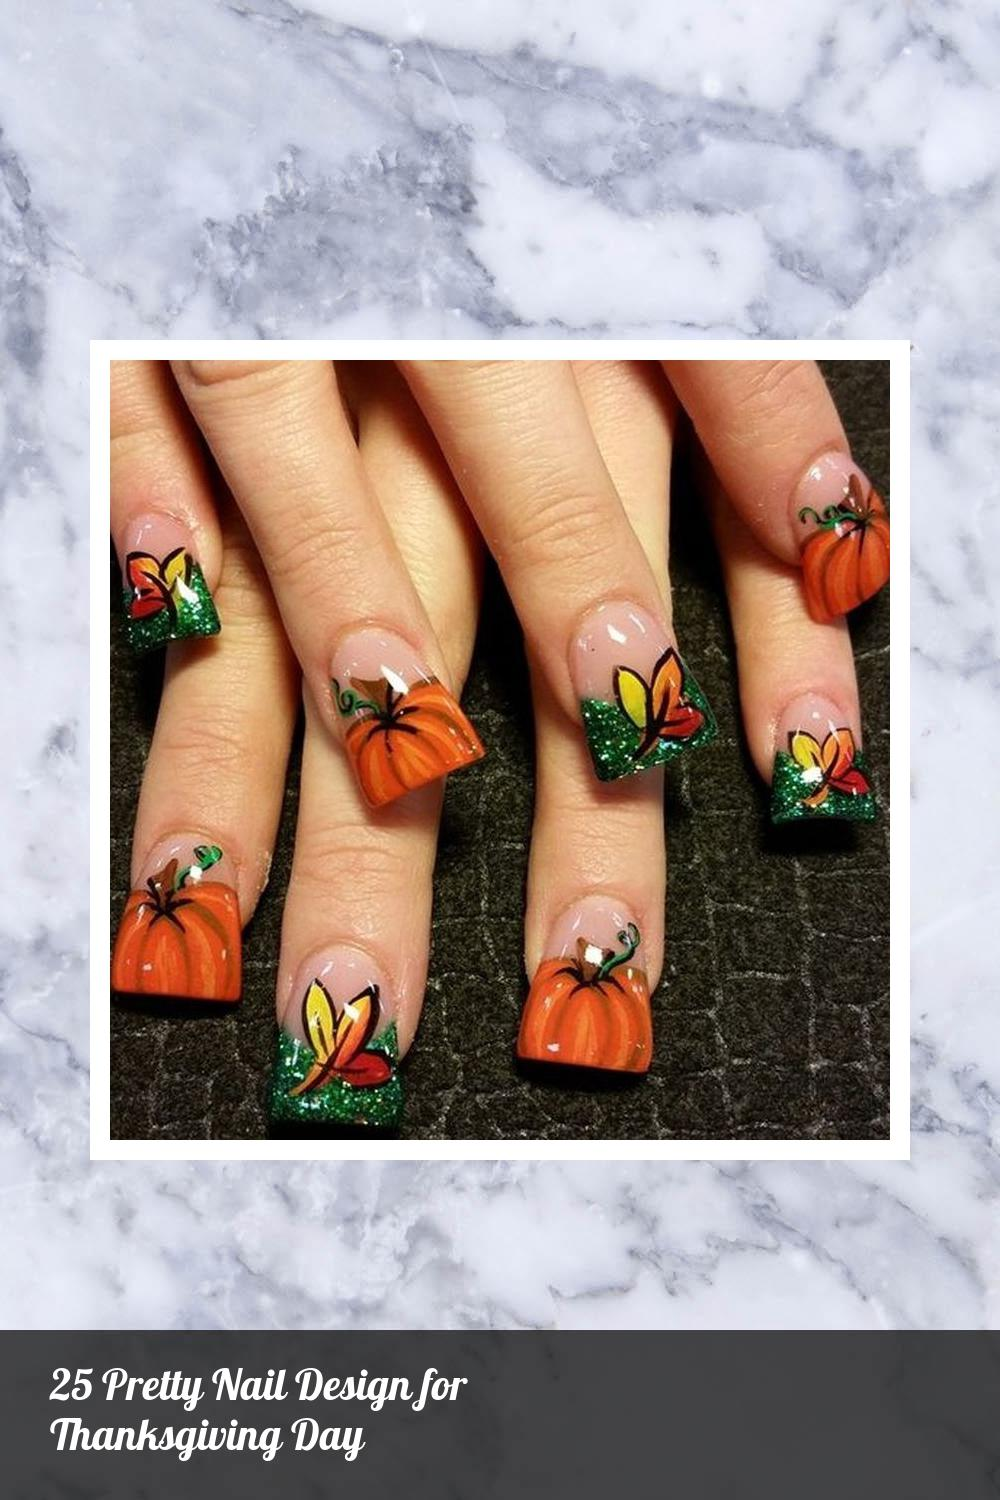 25 Pretty Nail Design for Thanksgiving Day 2